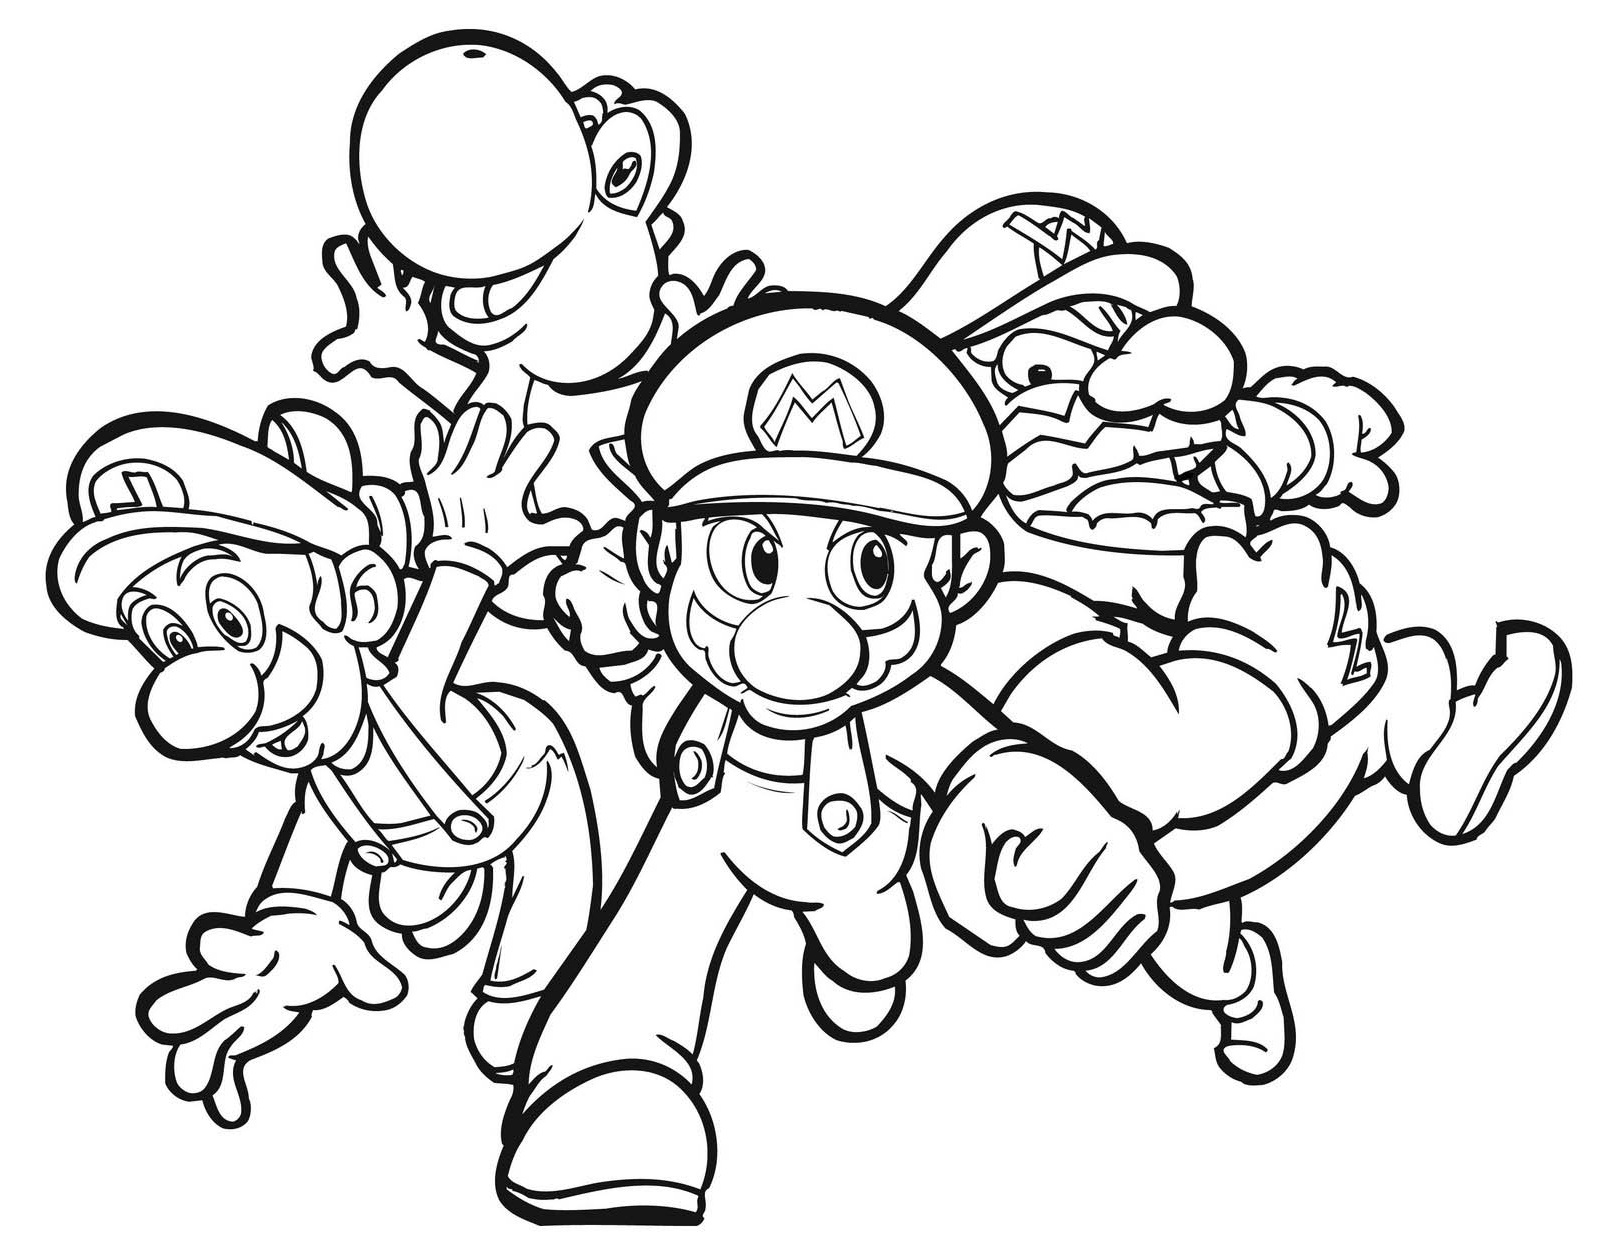 mario and luigi coloring mario and luigi dancing in mario brothers coloring page coloring mario and luigi